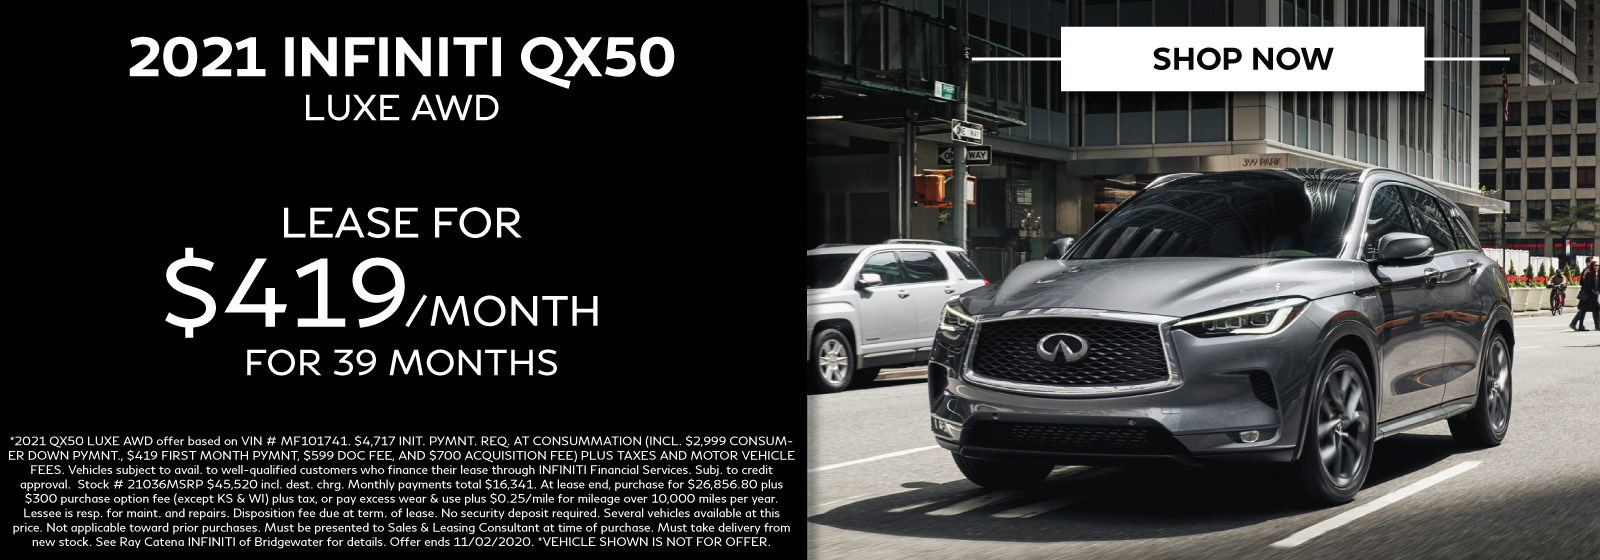 2021 INFINITI QX50 Luxe AWD. Lease for $419/mo for 39 months. Offer expires 11/02/2020. Click to view inventory. Image is of a 2021 INFINITI QX50 in the city on the street. *VEHICLE SHOWN MAY NOT BE FOR OFFER.